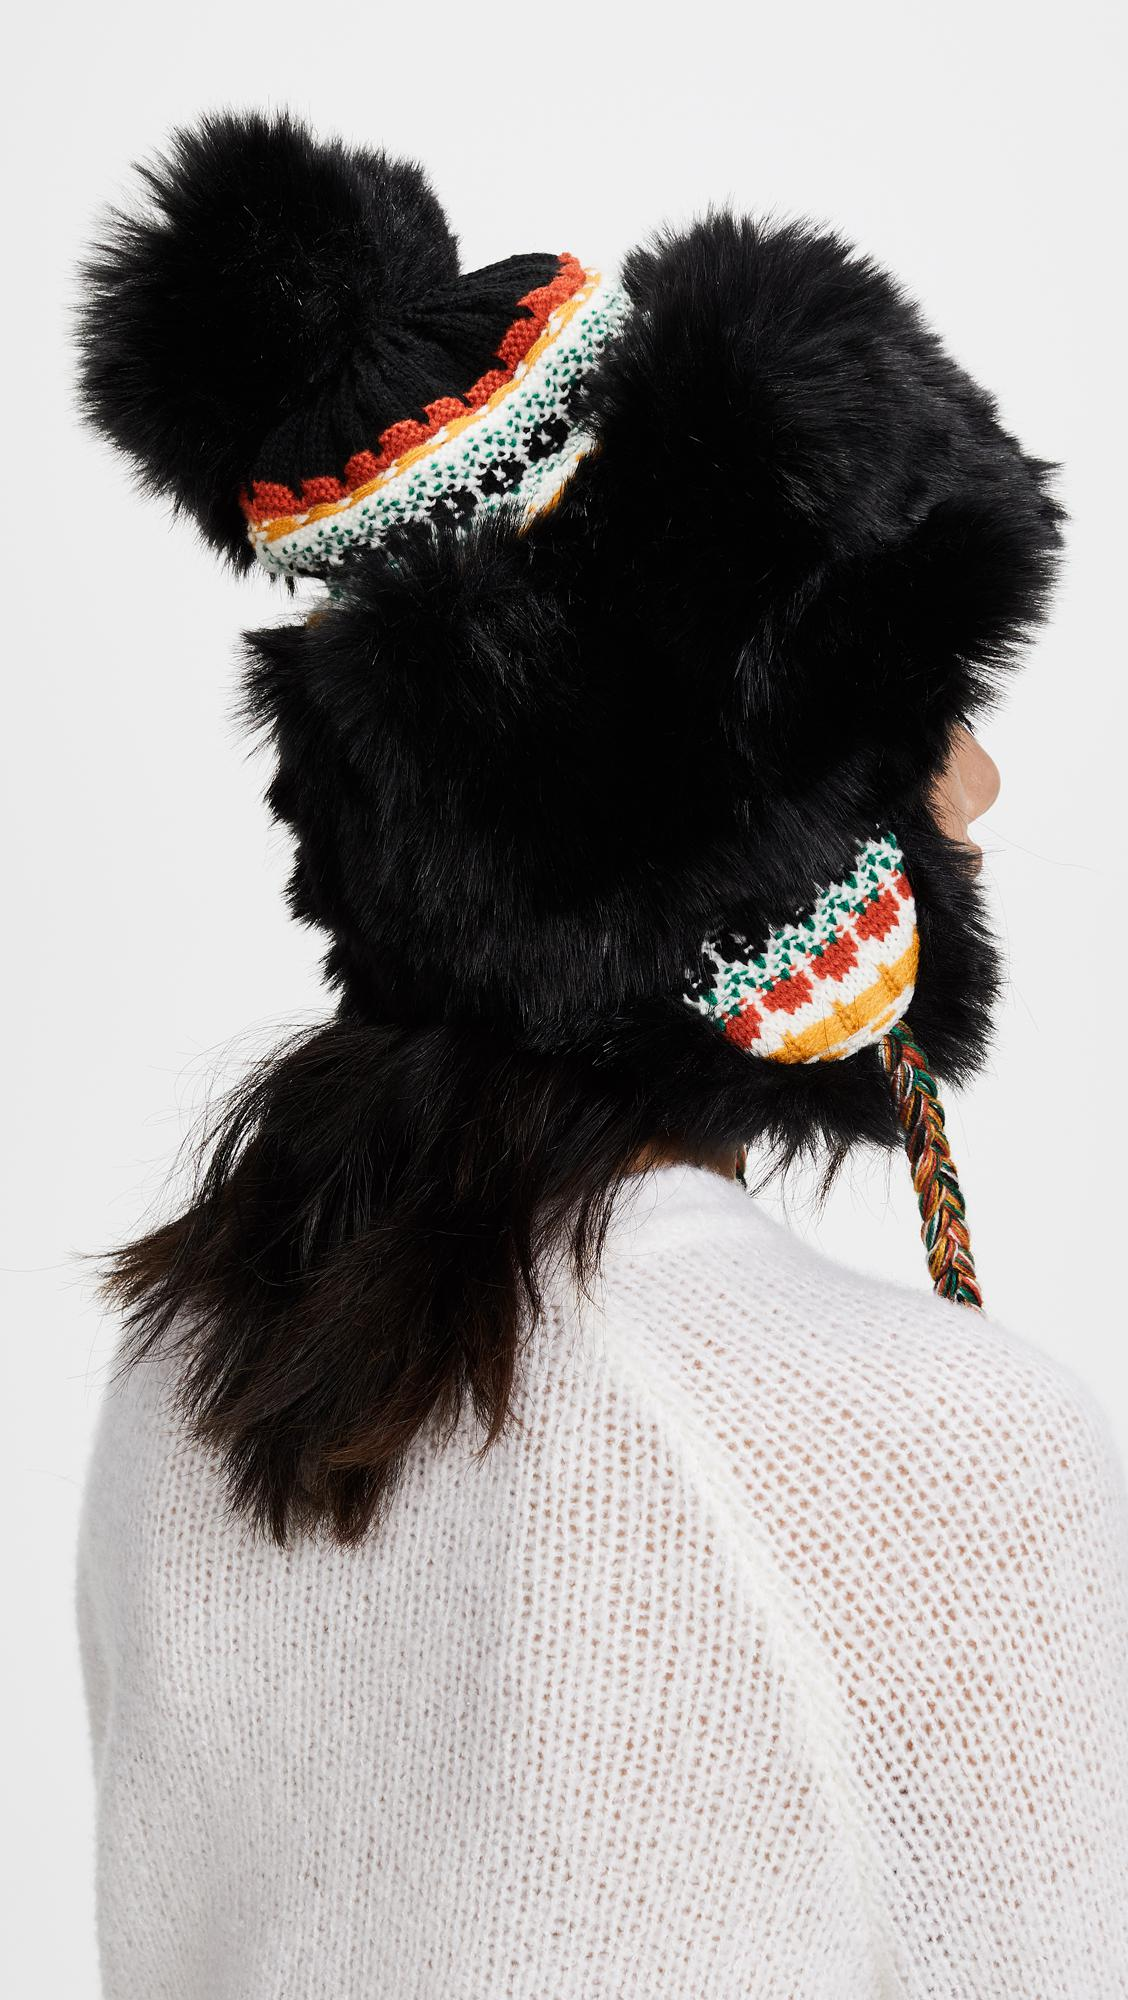 Lyst - Free People Melt My Heart Trapper Hat in Black 8a12de1e82b6